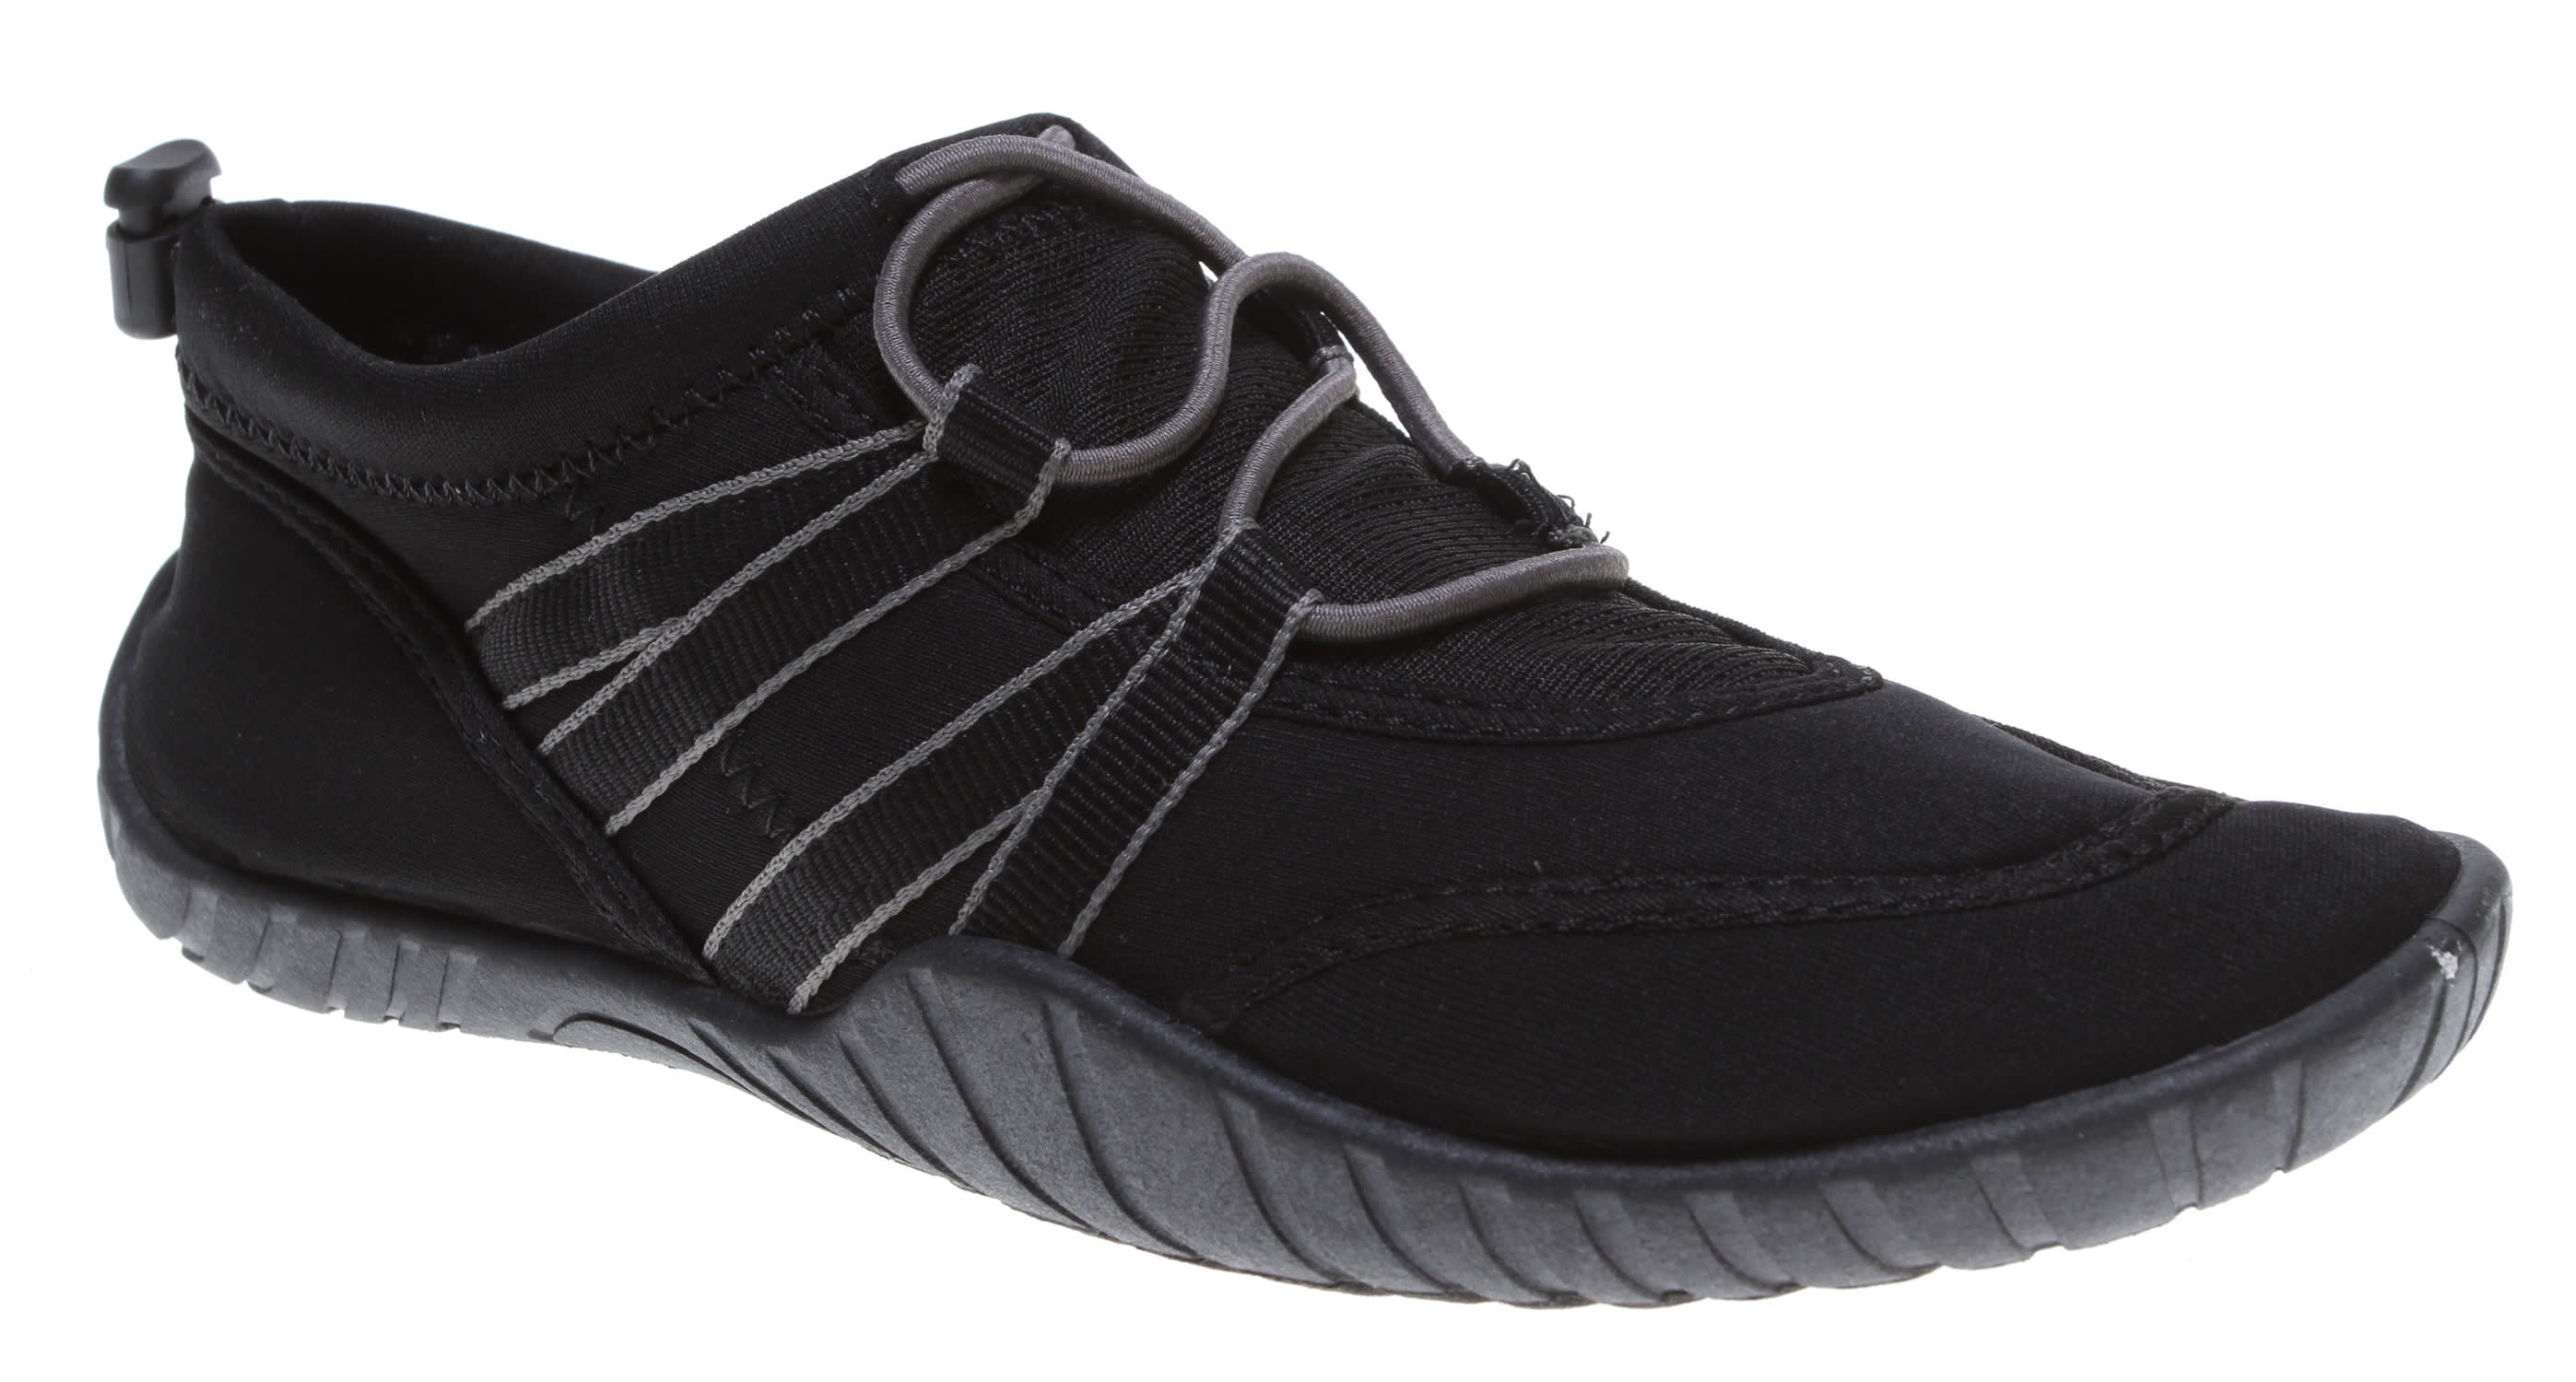 On Sale Rafters Cabo Water Shoes - Womens up to 55% off